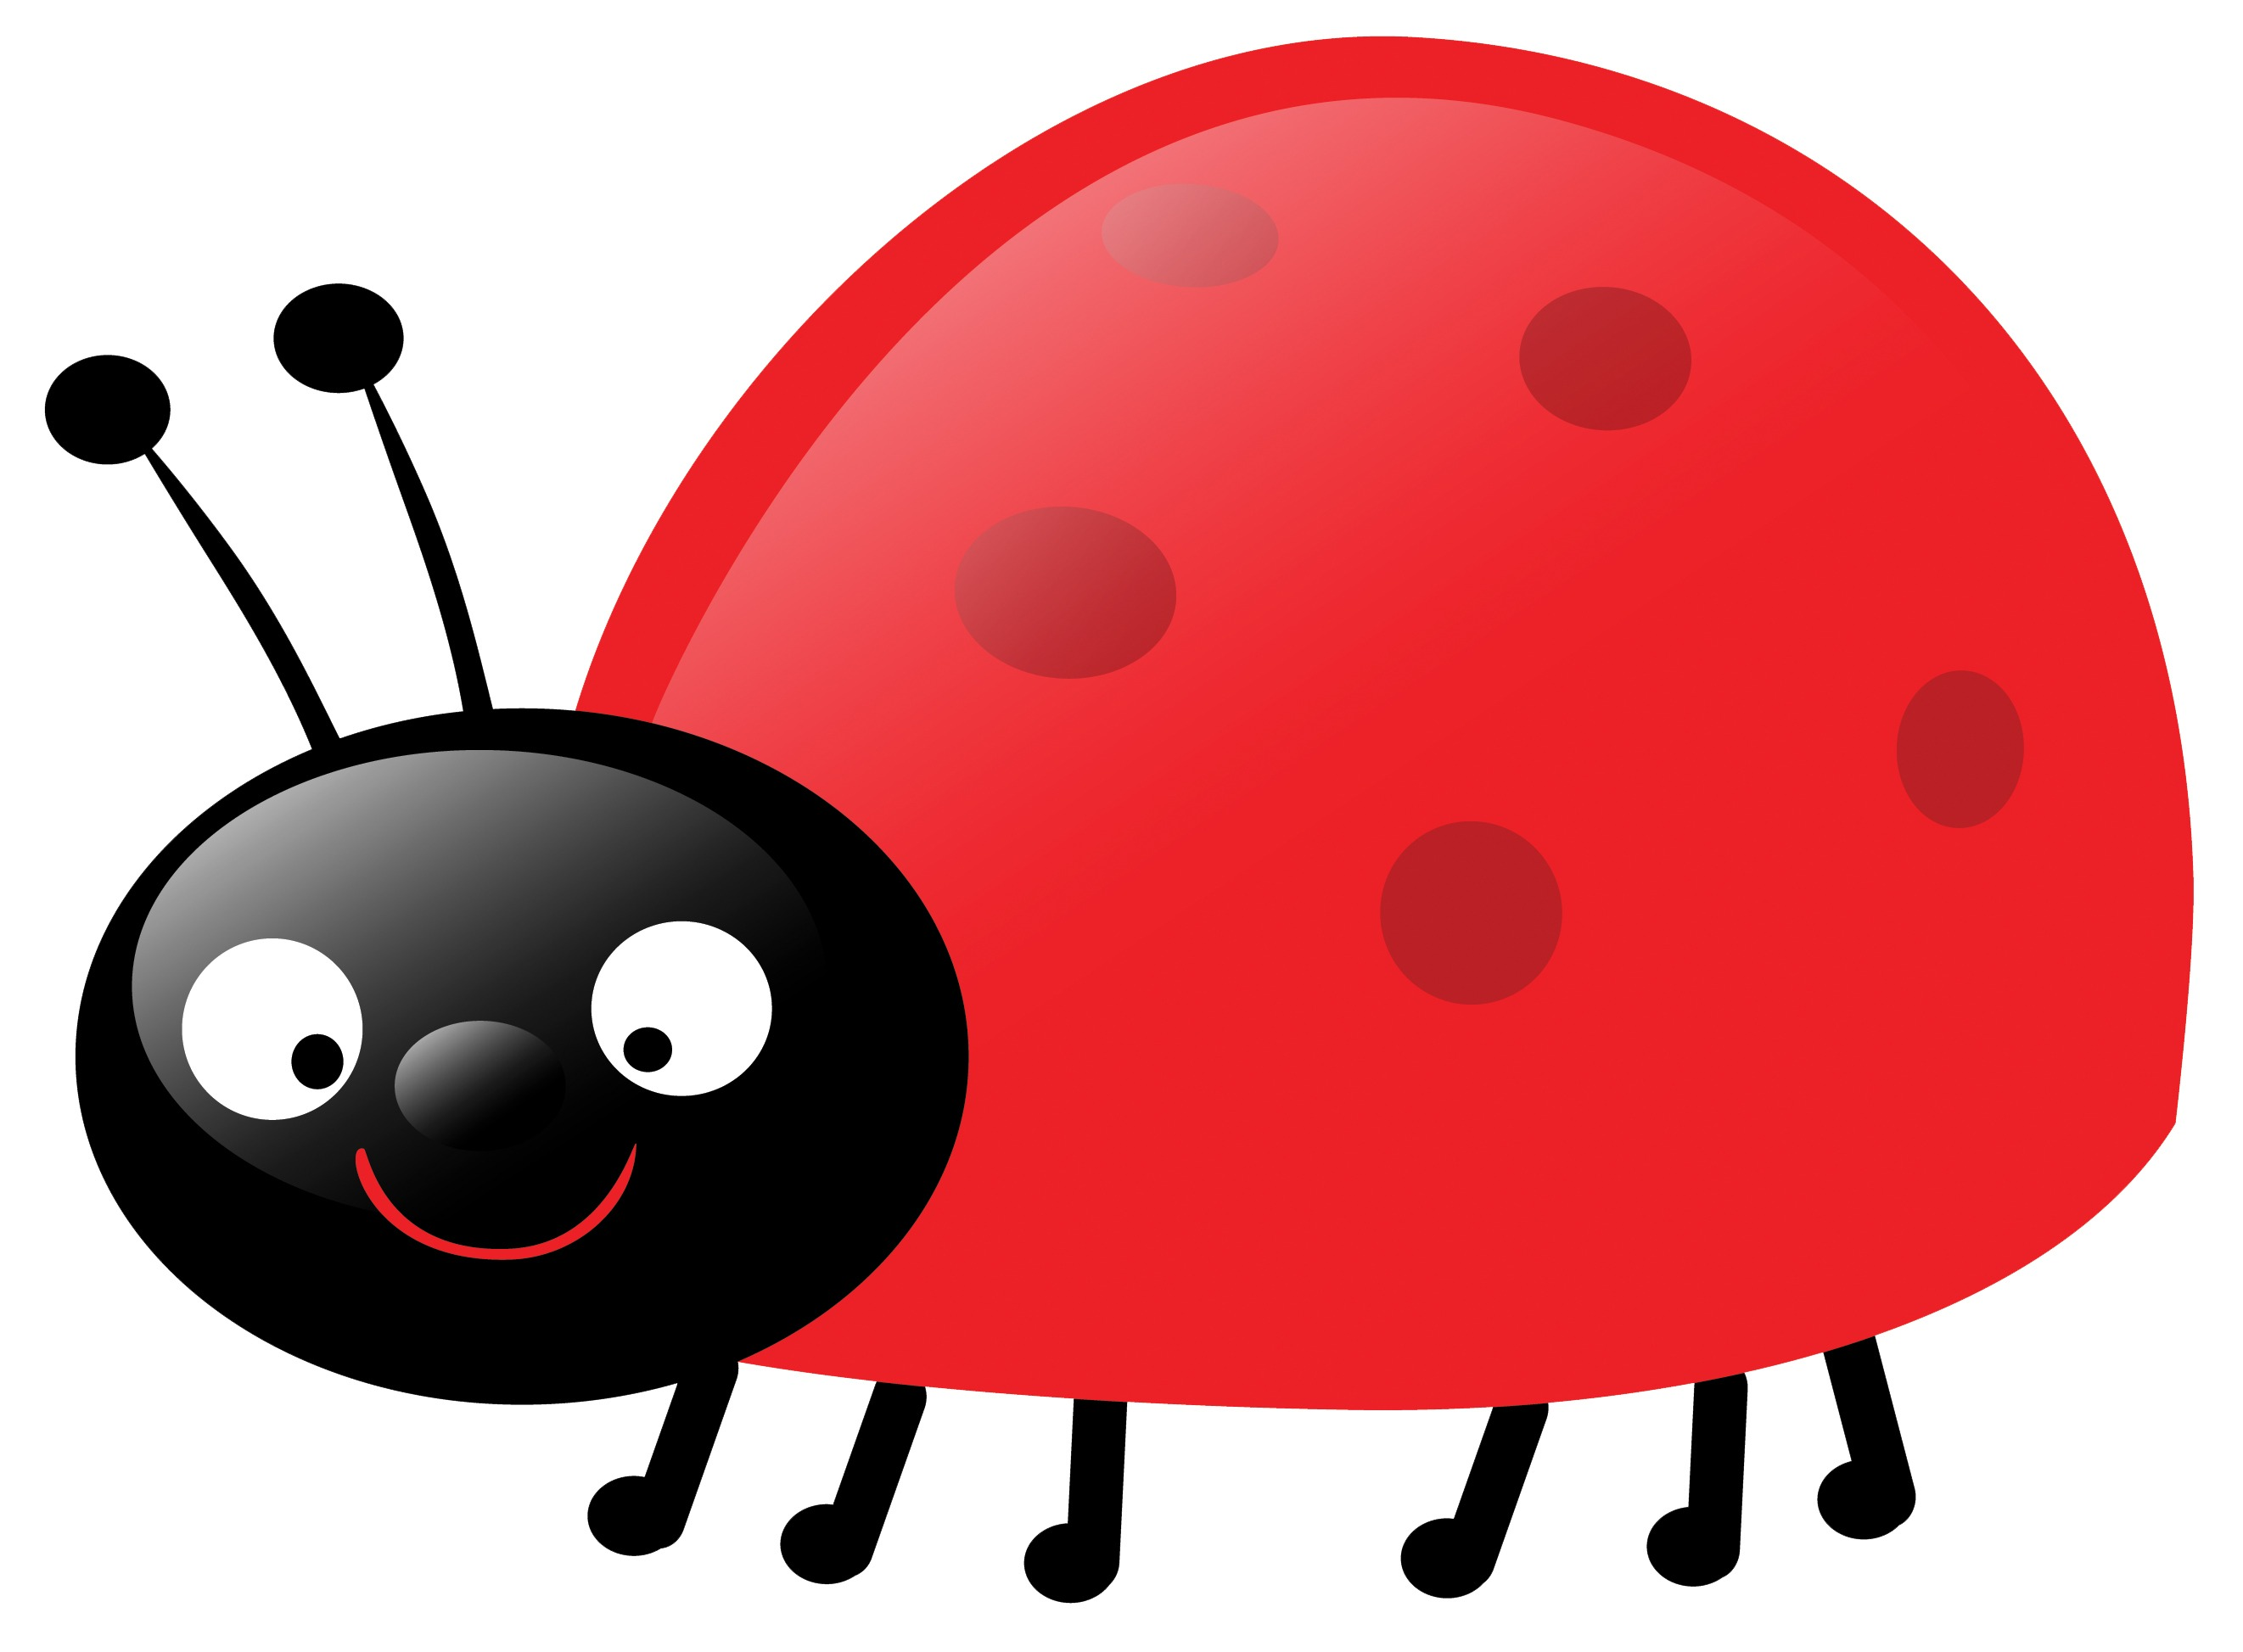 cute ladybug clipart at getdrawings com free for personal use cute rh getdrawings com cute ladybug clip art free